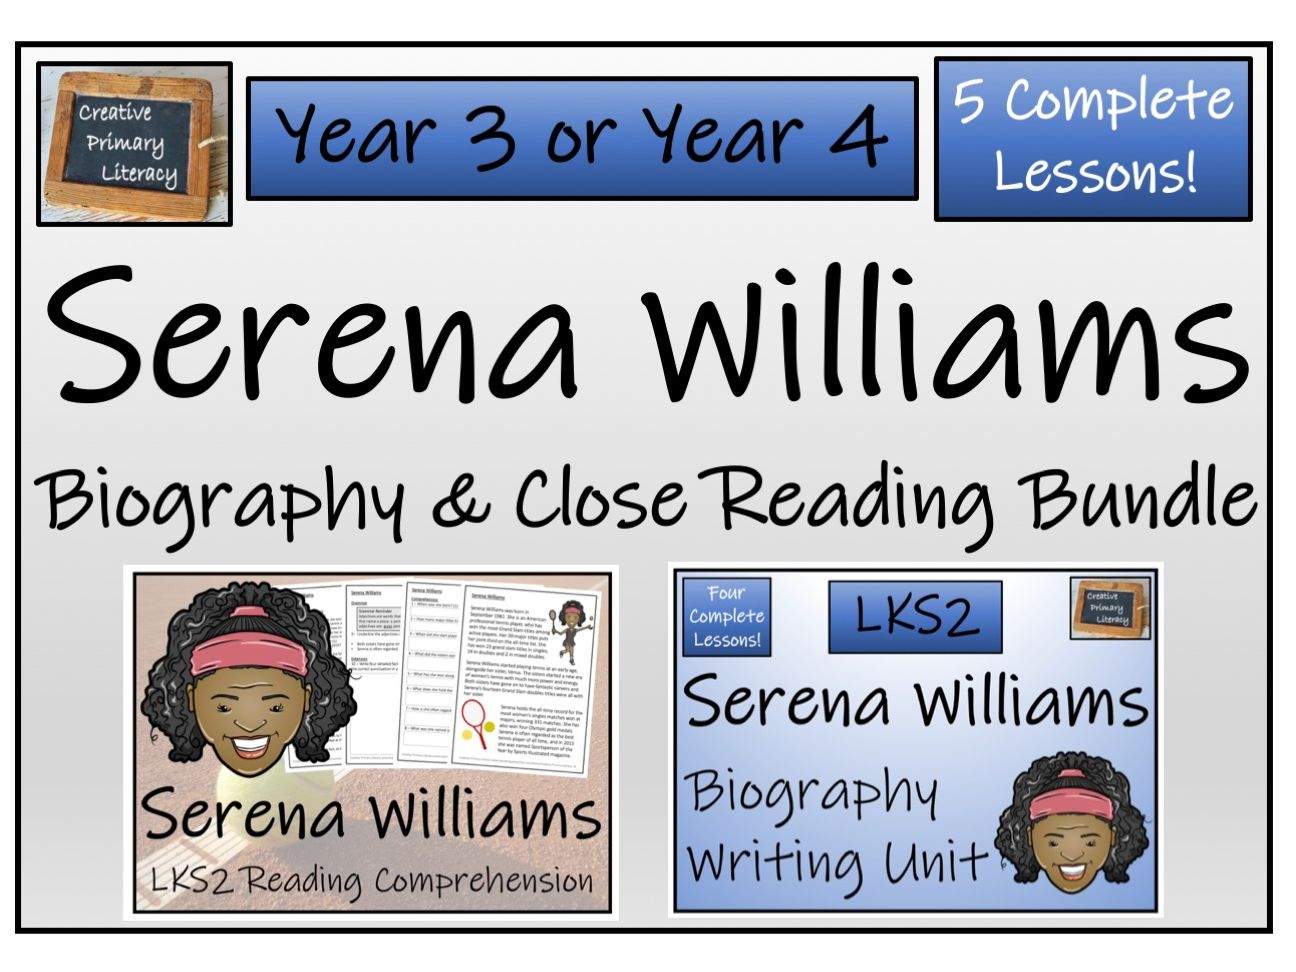 LKS2 Literacy - Serena Williams Reading Comprehension & Biography Bundle